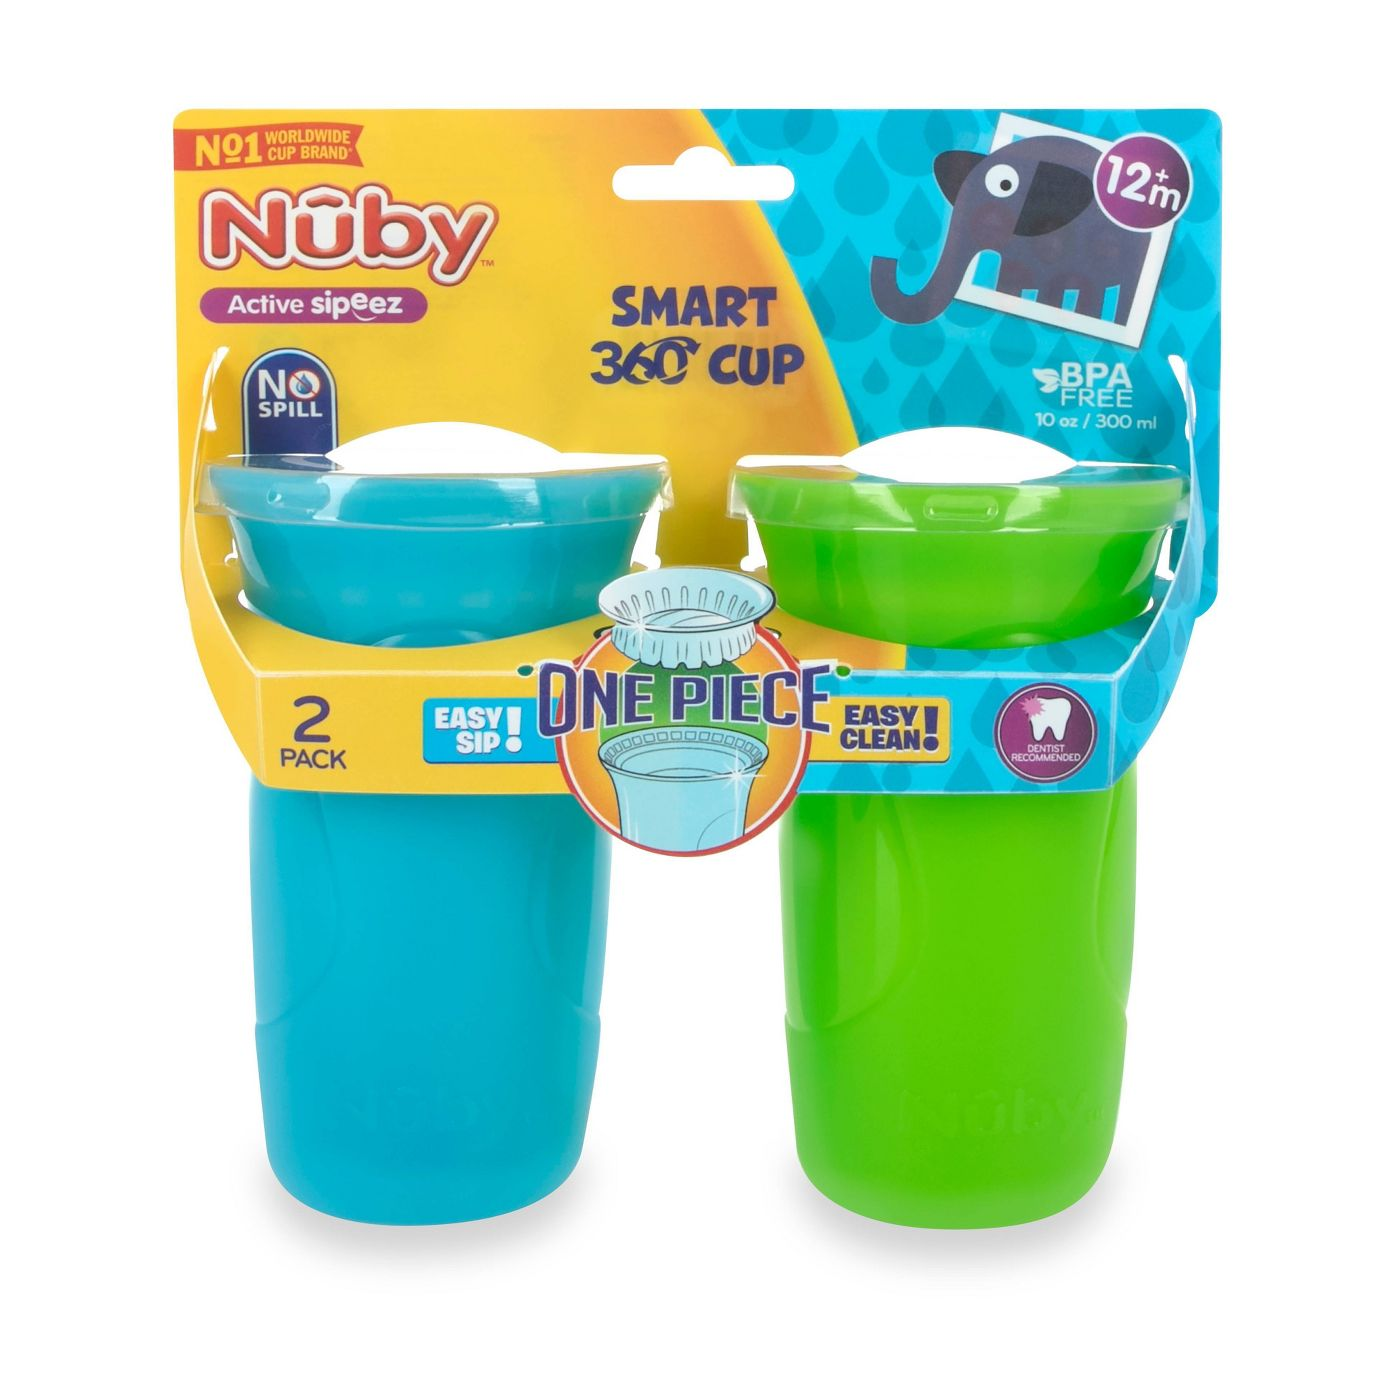 Nuby 360 Edge Cup is a new favorite in our house!